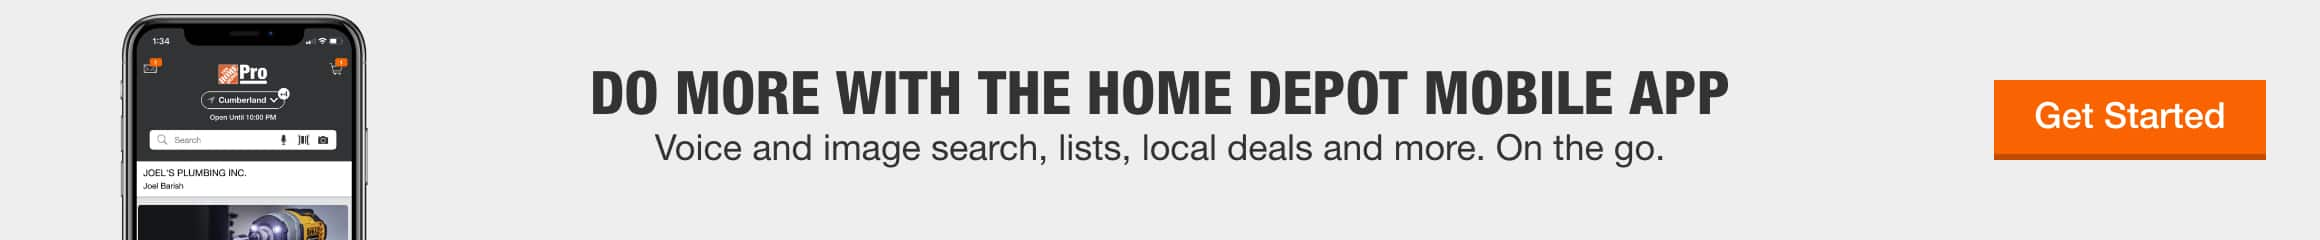 Do More With The Home Depot Mobile App